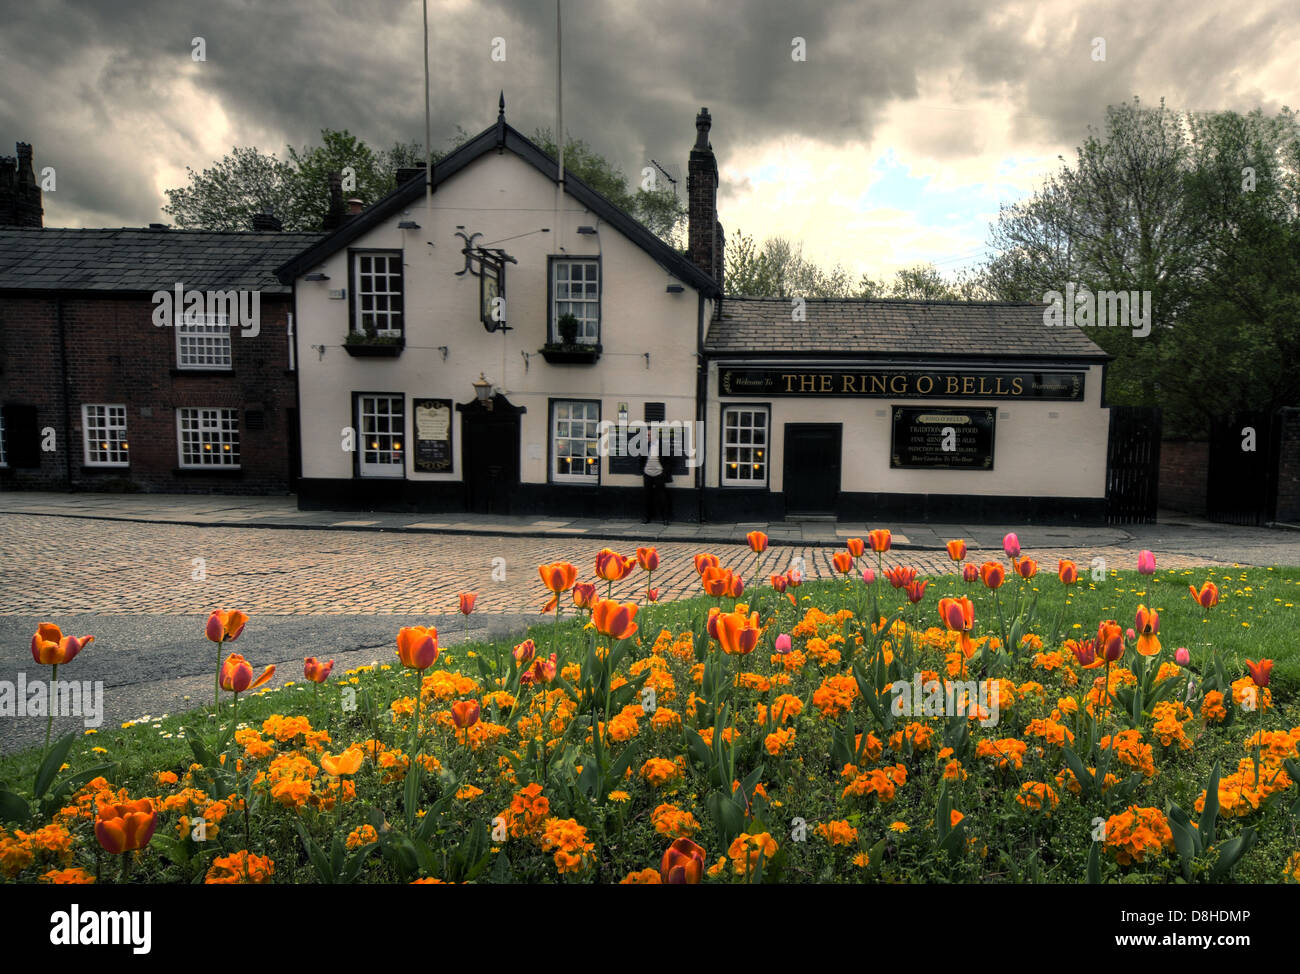 real,ale,CAMRA,bright,flowers,in,front,church,ringo'bells,UK,GB,Church,Street,Warrington,WA12TL,WA1,2TL,spring,dark,moody,sky,public,house,crawl,pubcrawl,around,cobbled,cul-de-sac,trust,inns,inn,traditional,town,centre,Adjacent,to,St,Elphins,Parish,Church,opposite,Sainsburys,Gotonysmith,Warringtonians,Buy Pictures of,Buy Images Of